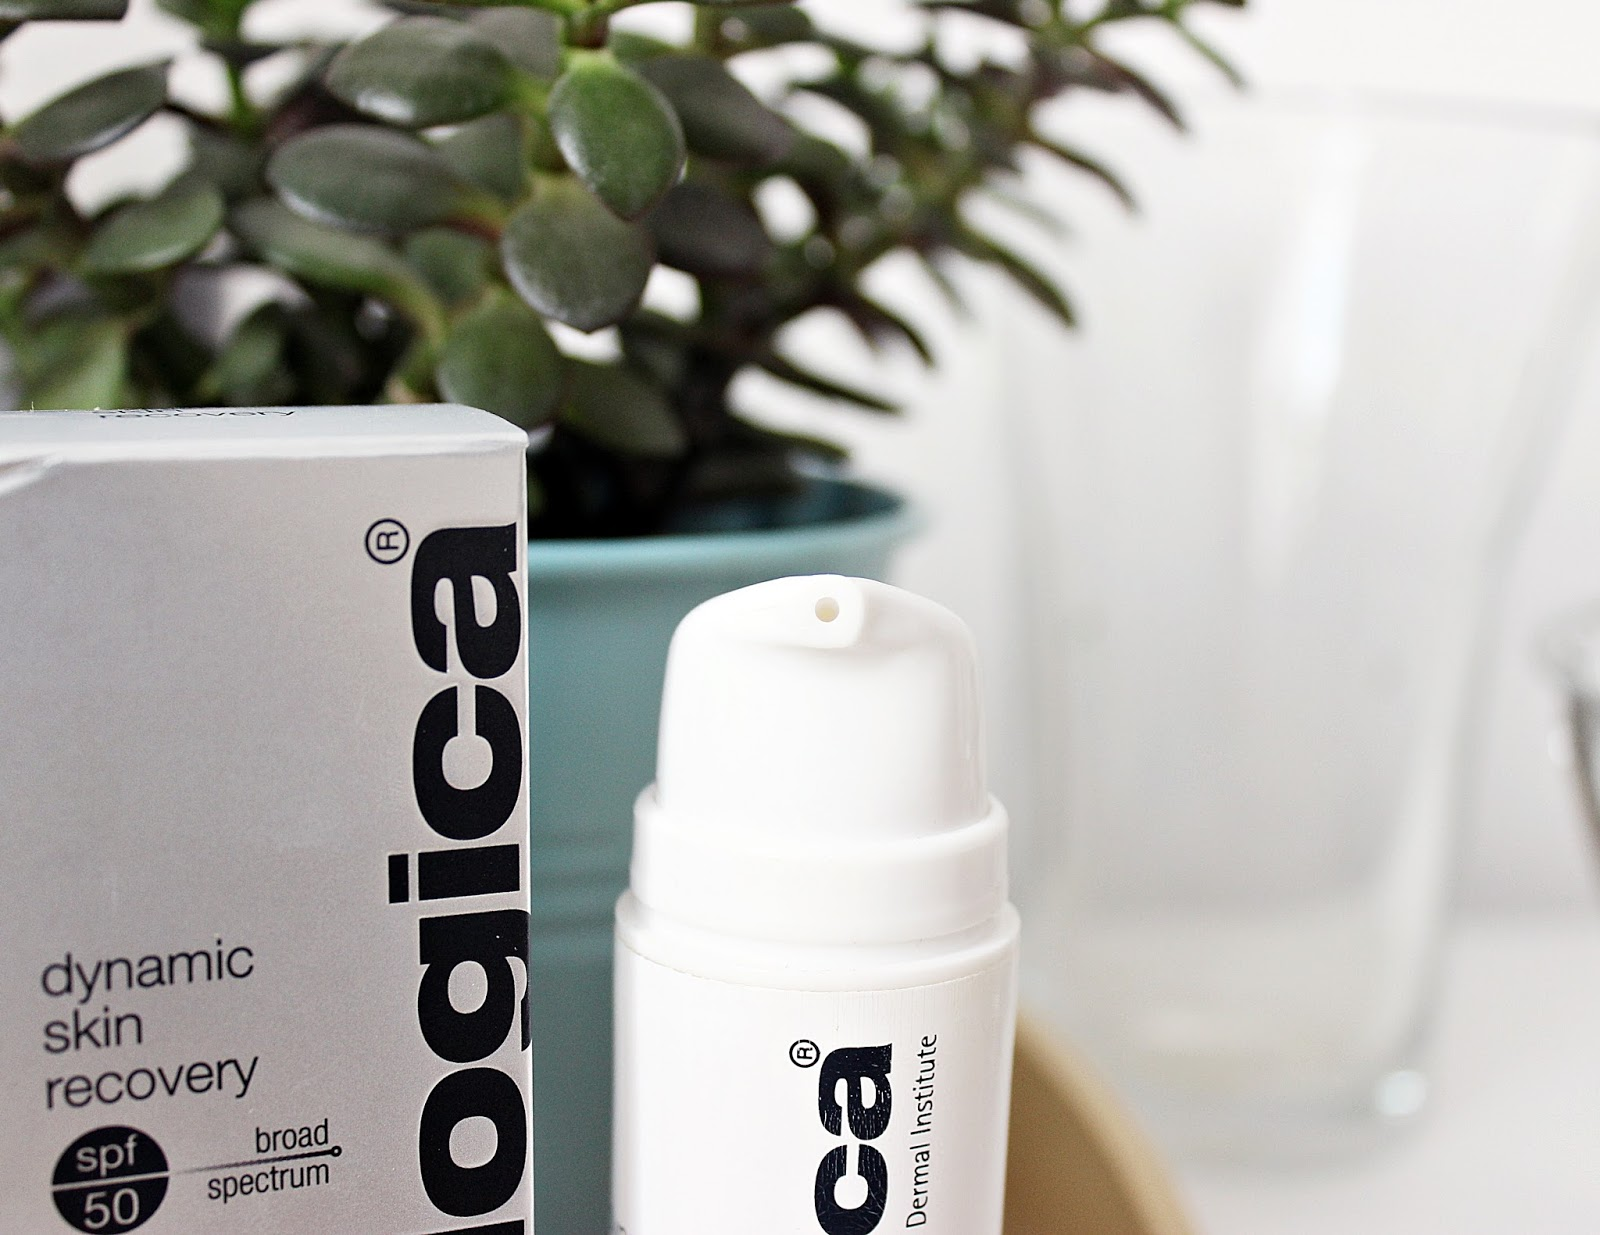 Dermalogica, Dynamic Skin Recovery SPF50